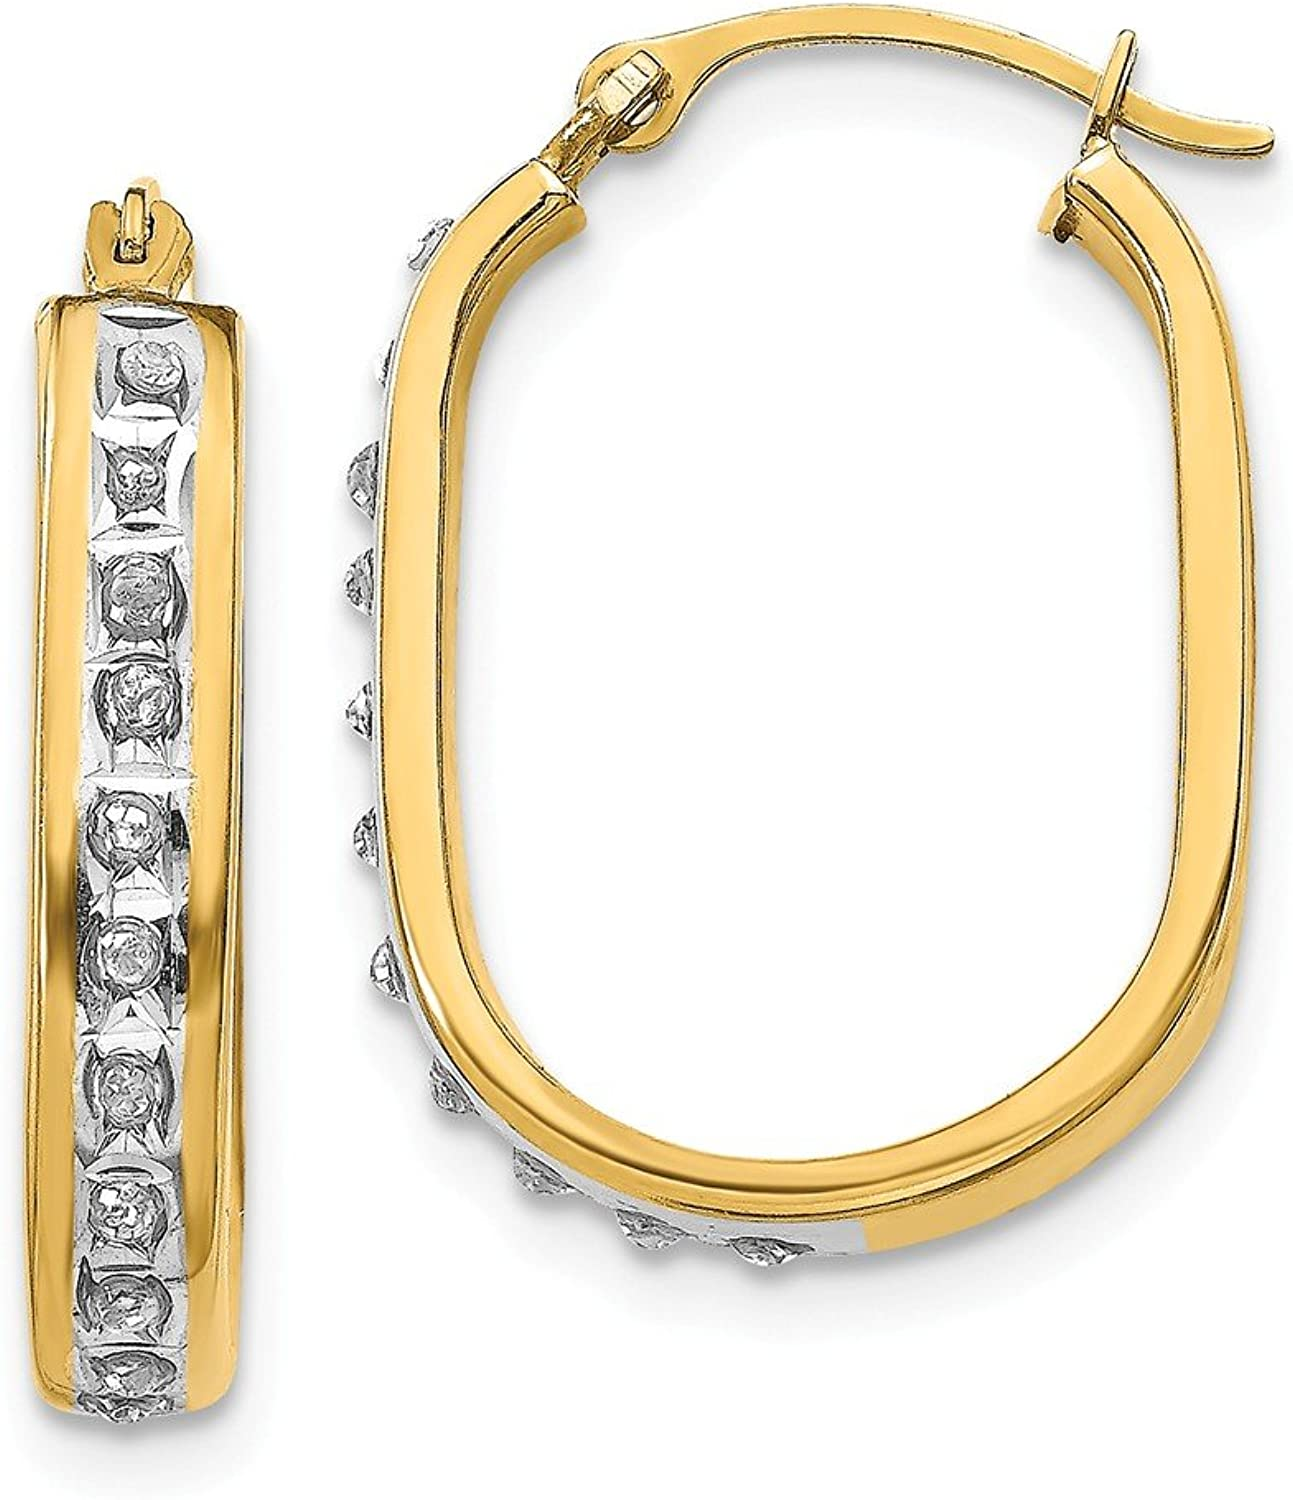 Beautiful Yellow gold 14K Yellowgold 14k Diamond Fascination Squared Hinged Hoop Earrings